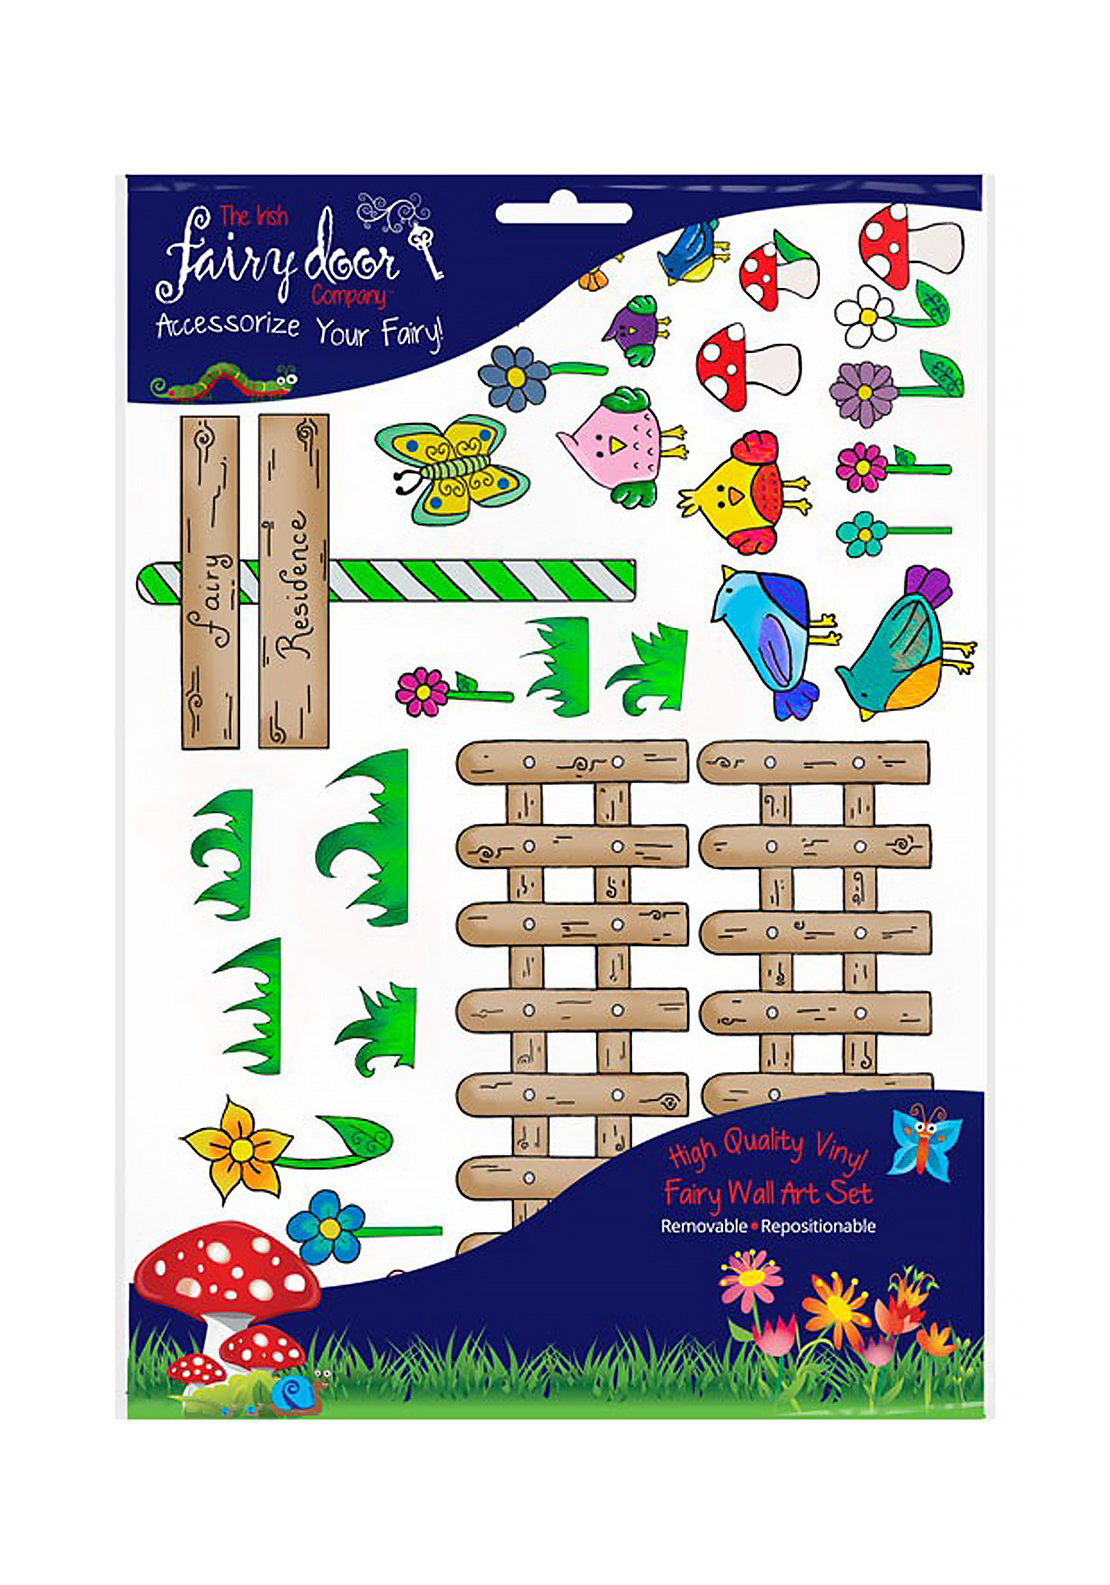 The irish fairy door company fairy picket fence wall art for The irish fairy door company facebook